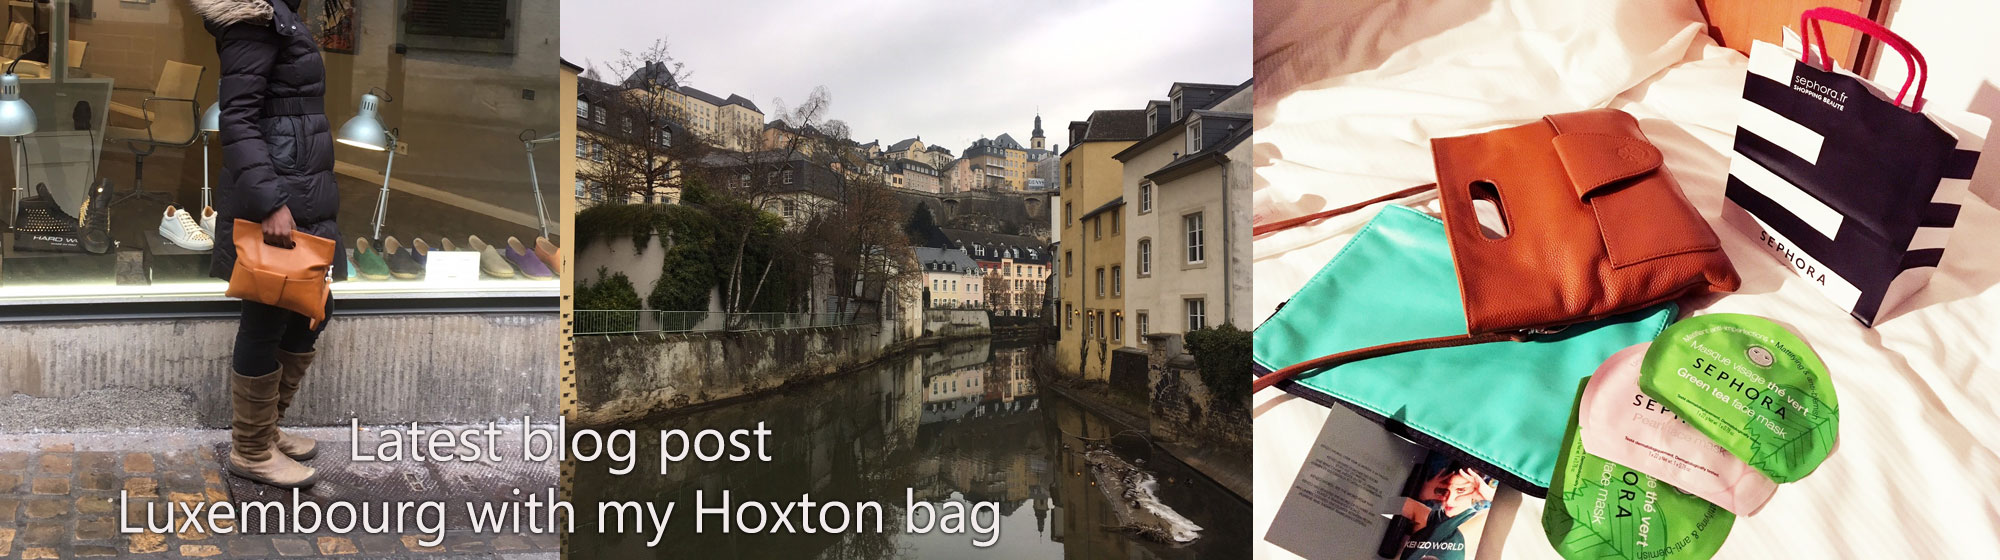 Luxembourg-banner